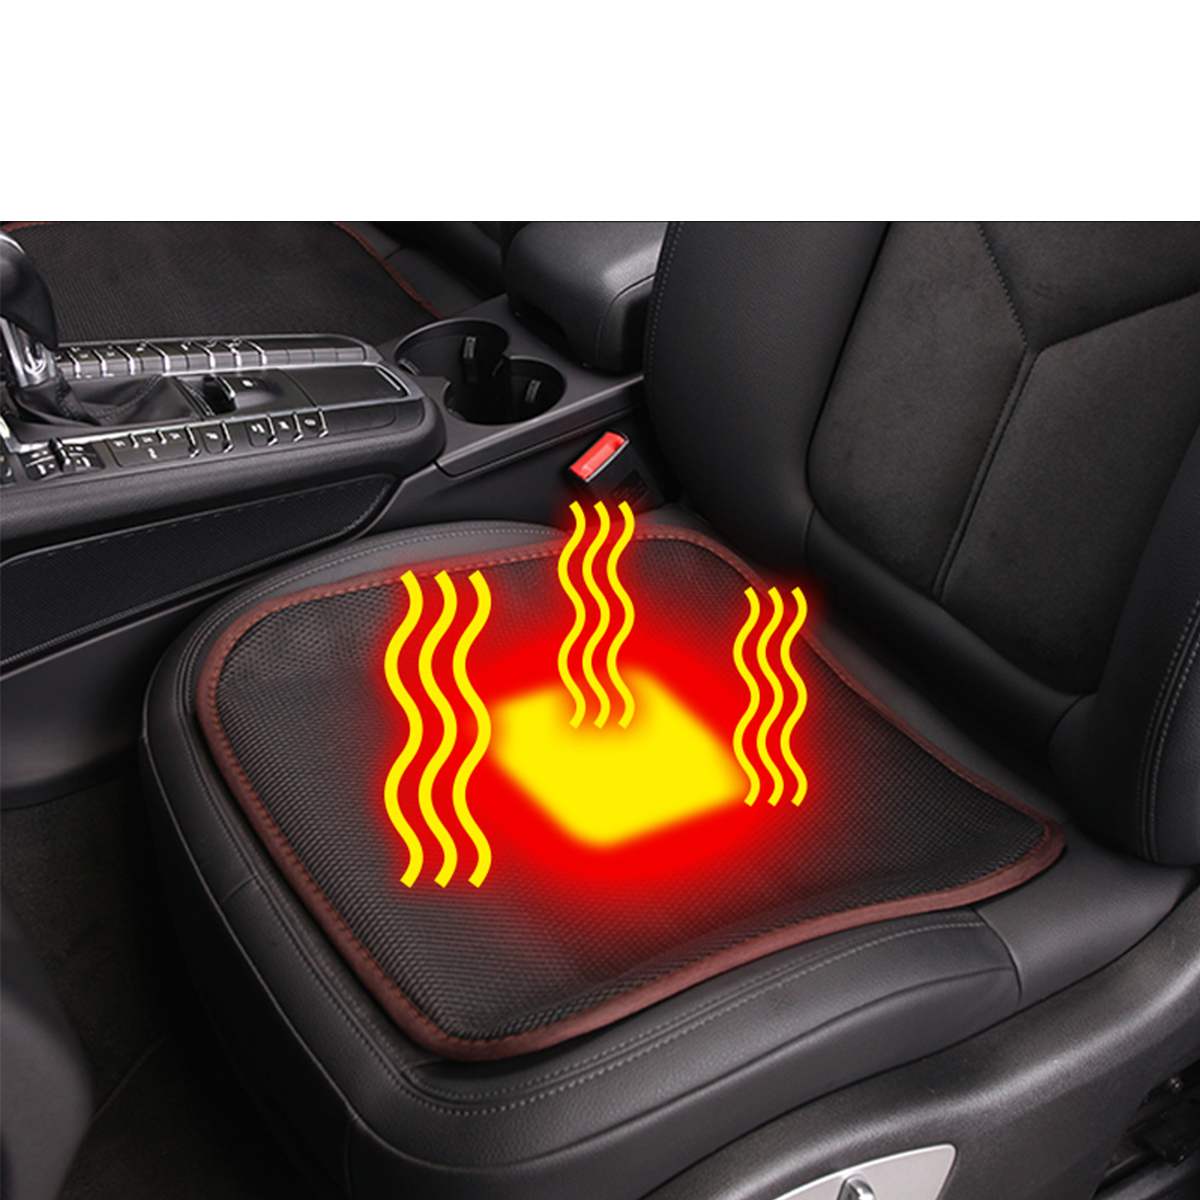 USB Heated Office Home Car Seat Cushion Cover Seat Heater Warmer Winter Cushion